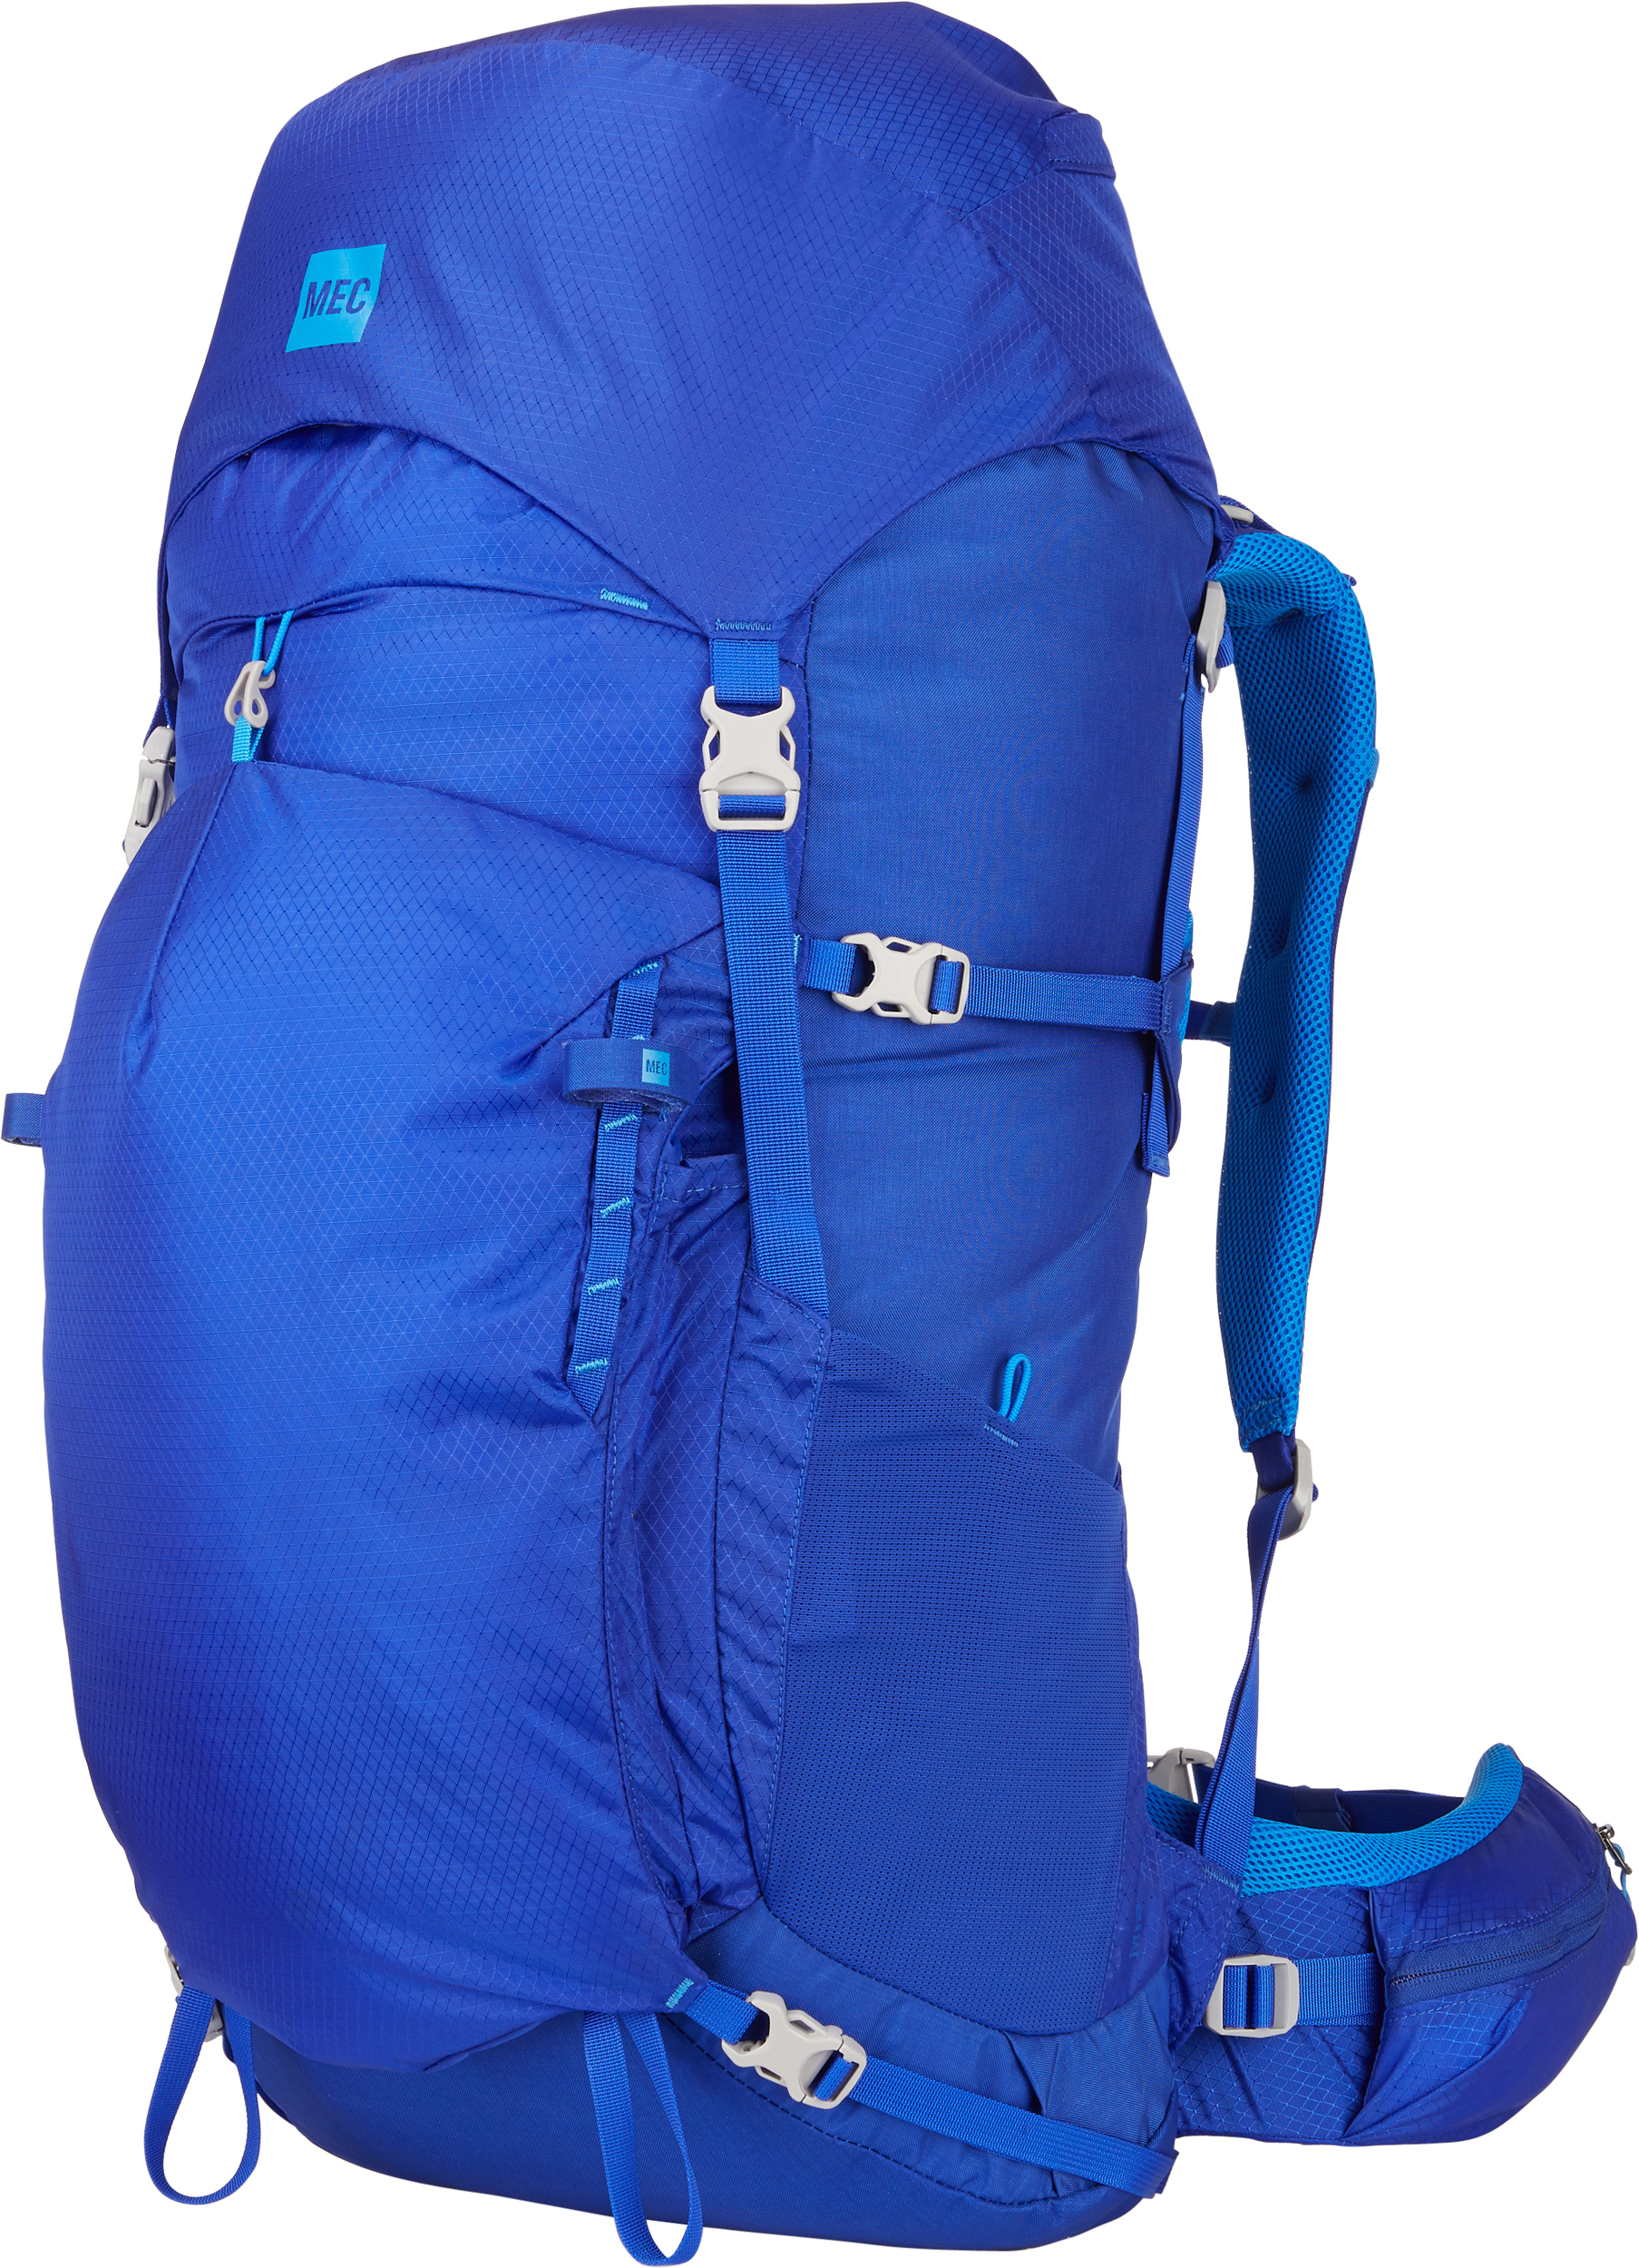 MEC Mistral 55 Backpack - Women s 61d4a8cca7